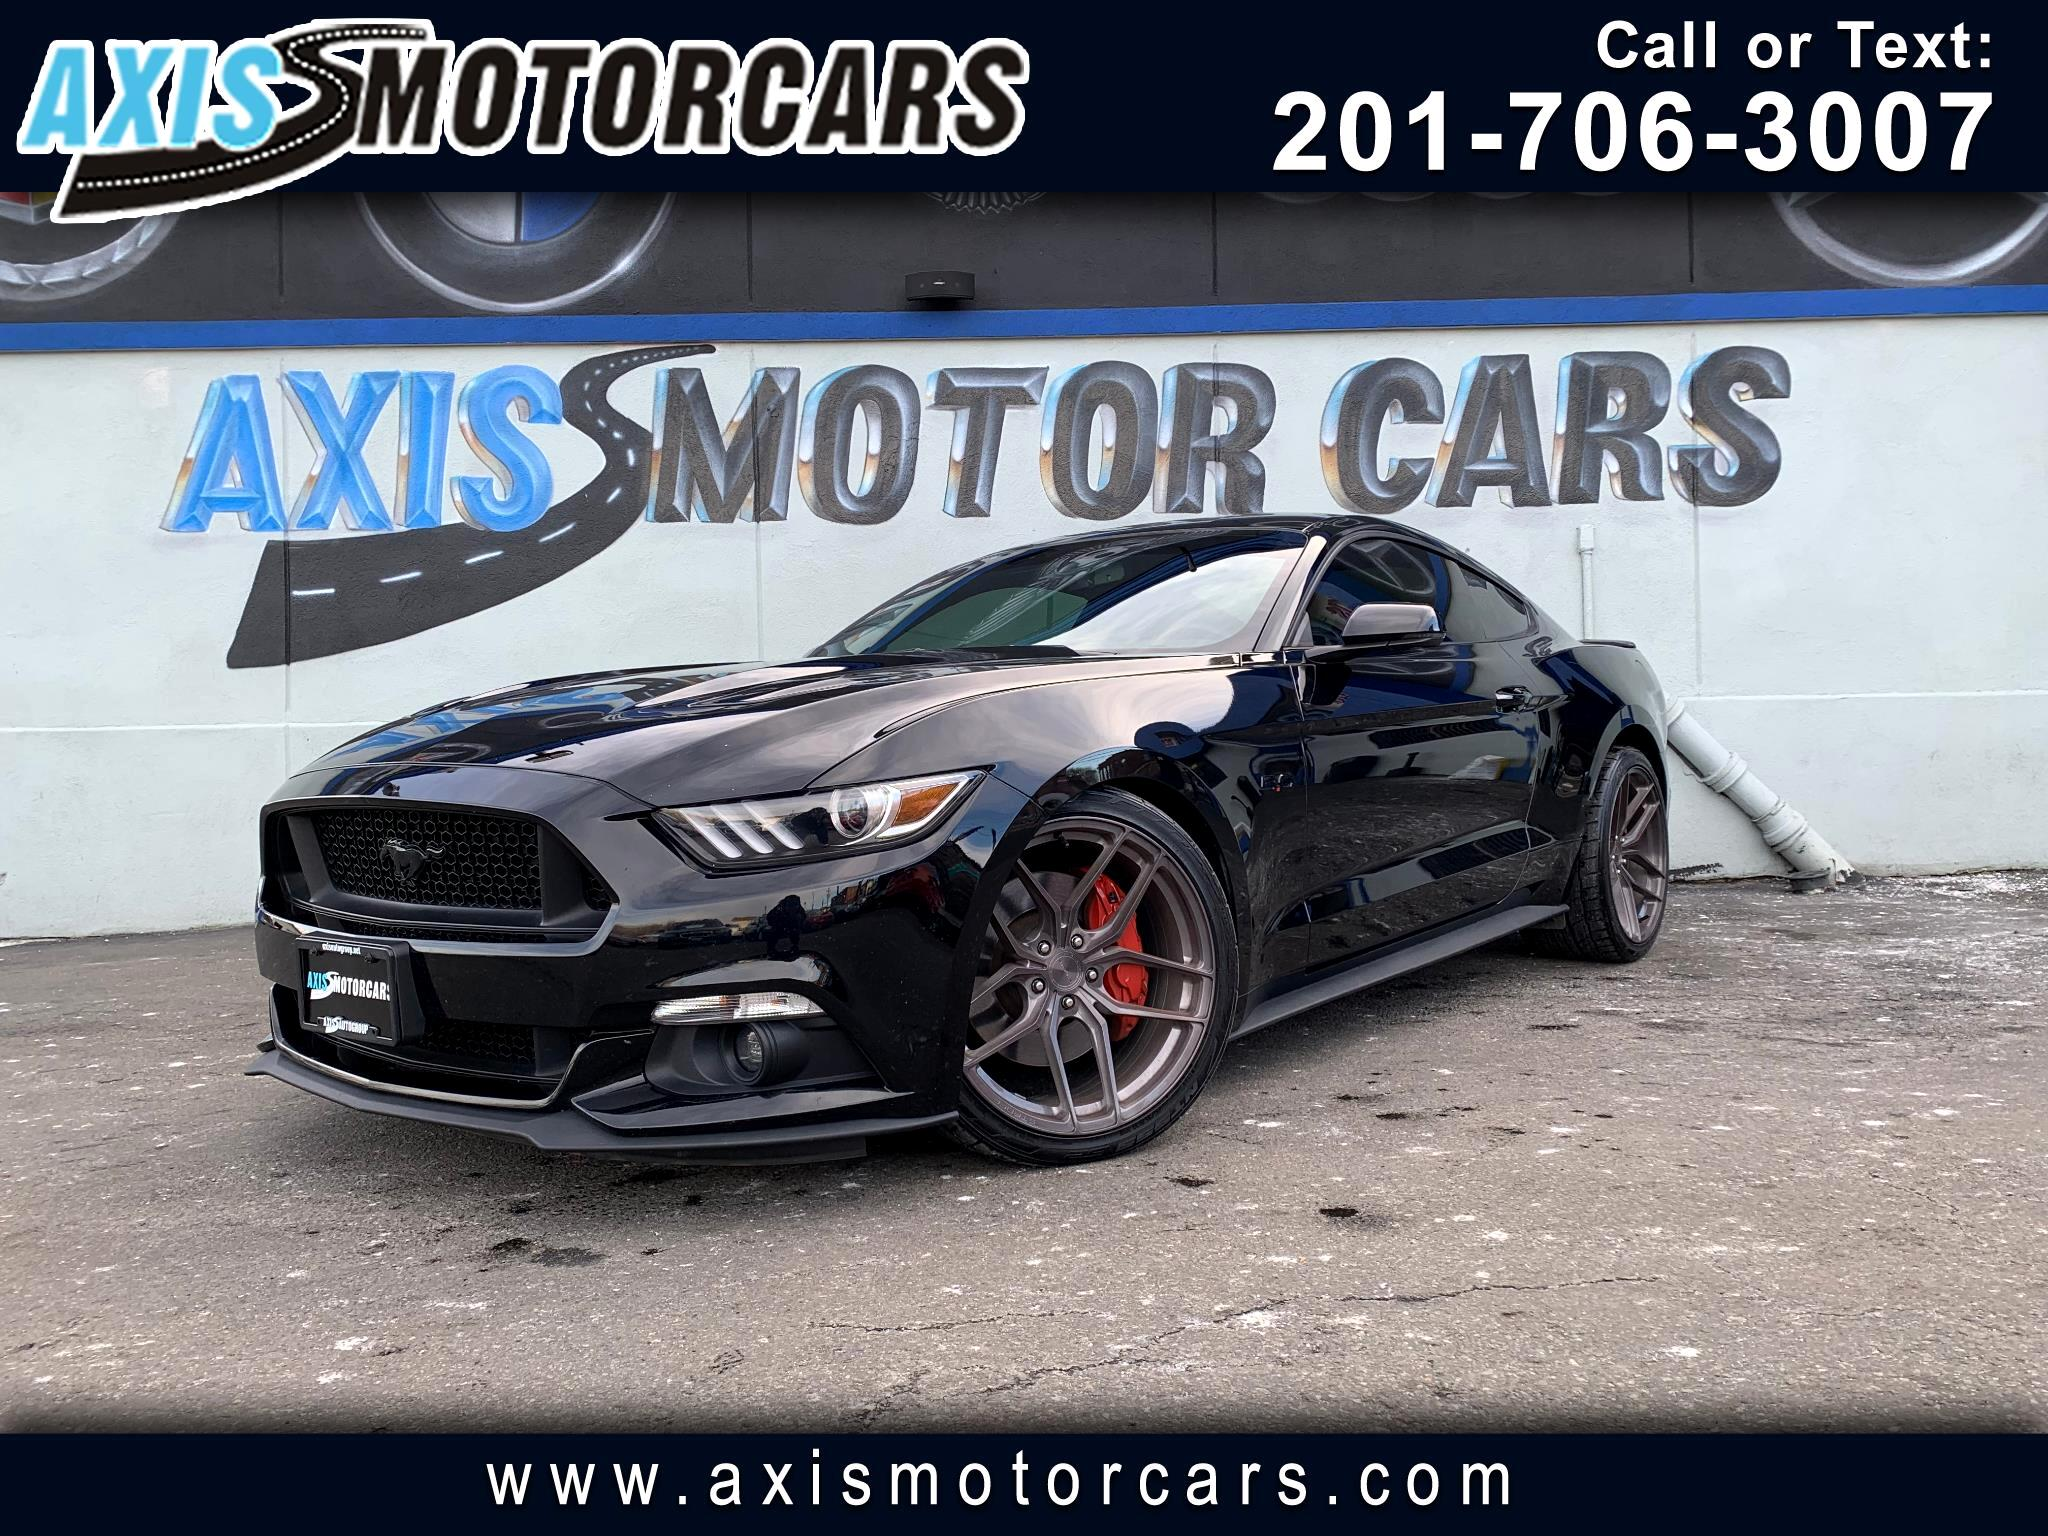 2016 Ford Mustang GT w/Navigation Bakup Camera